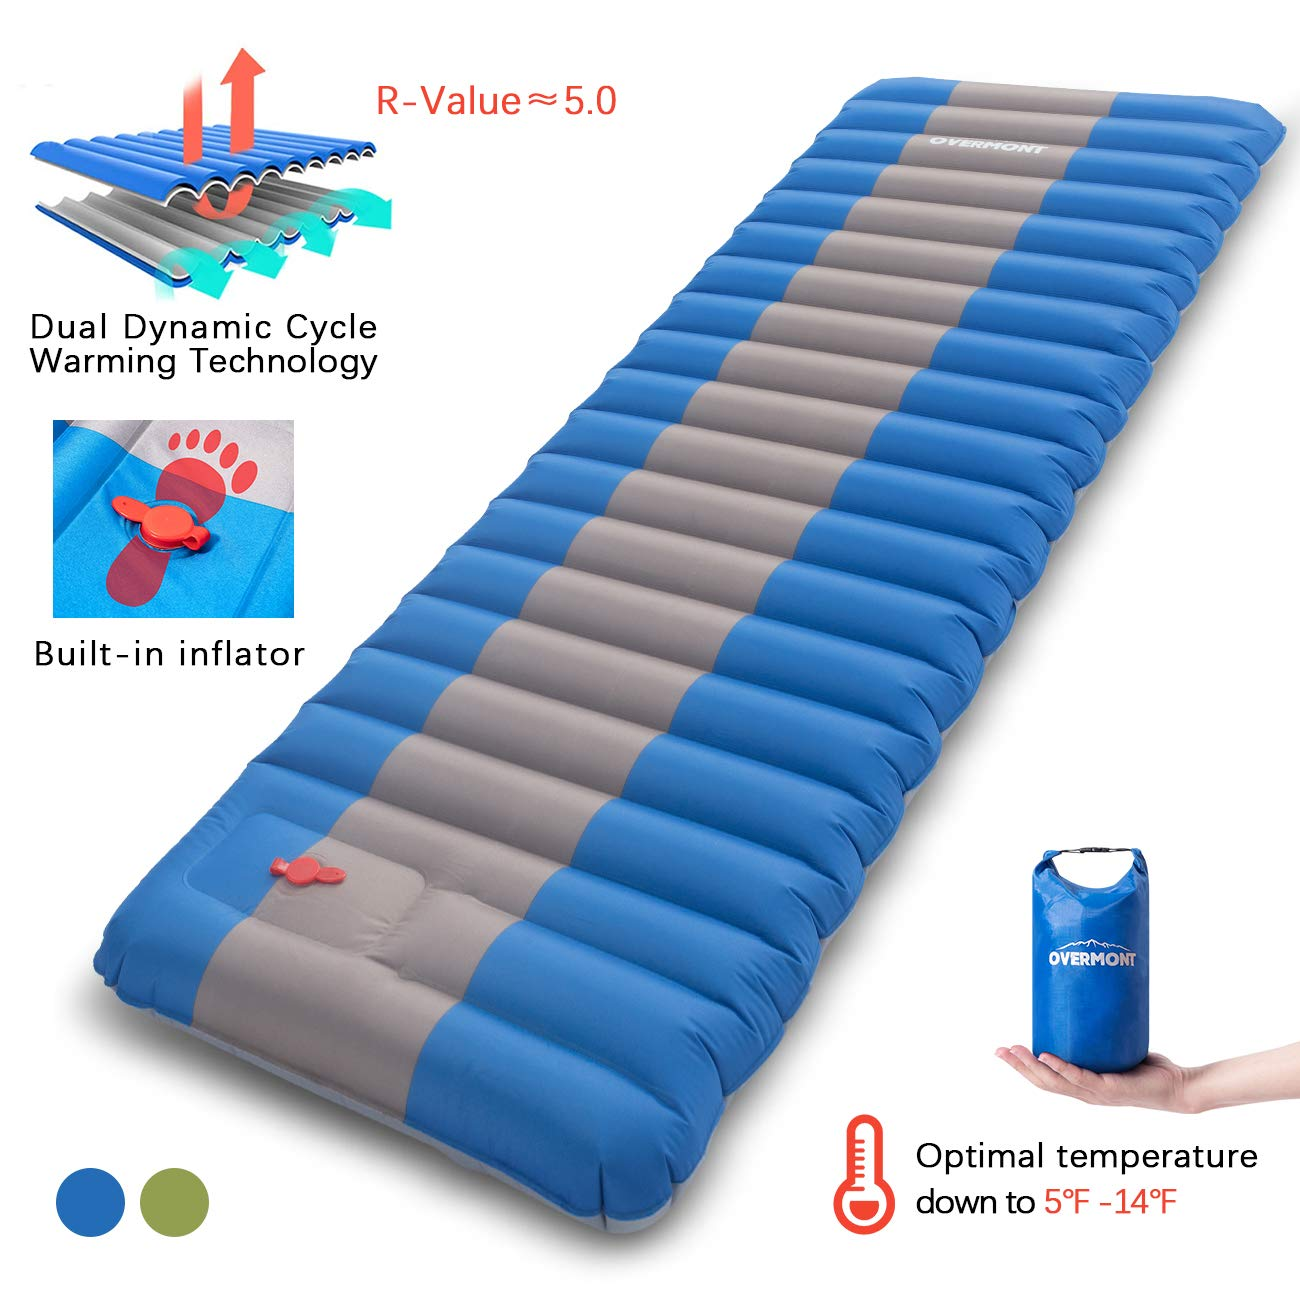 Overmont Sleeping Pad Inflatable Extra Thickness Camping Tent Mattress Pad Waterproof for Sleeping Comfortable Compact Air Mat for Backpacking Travel Hiking Built in Pump by Overmont